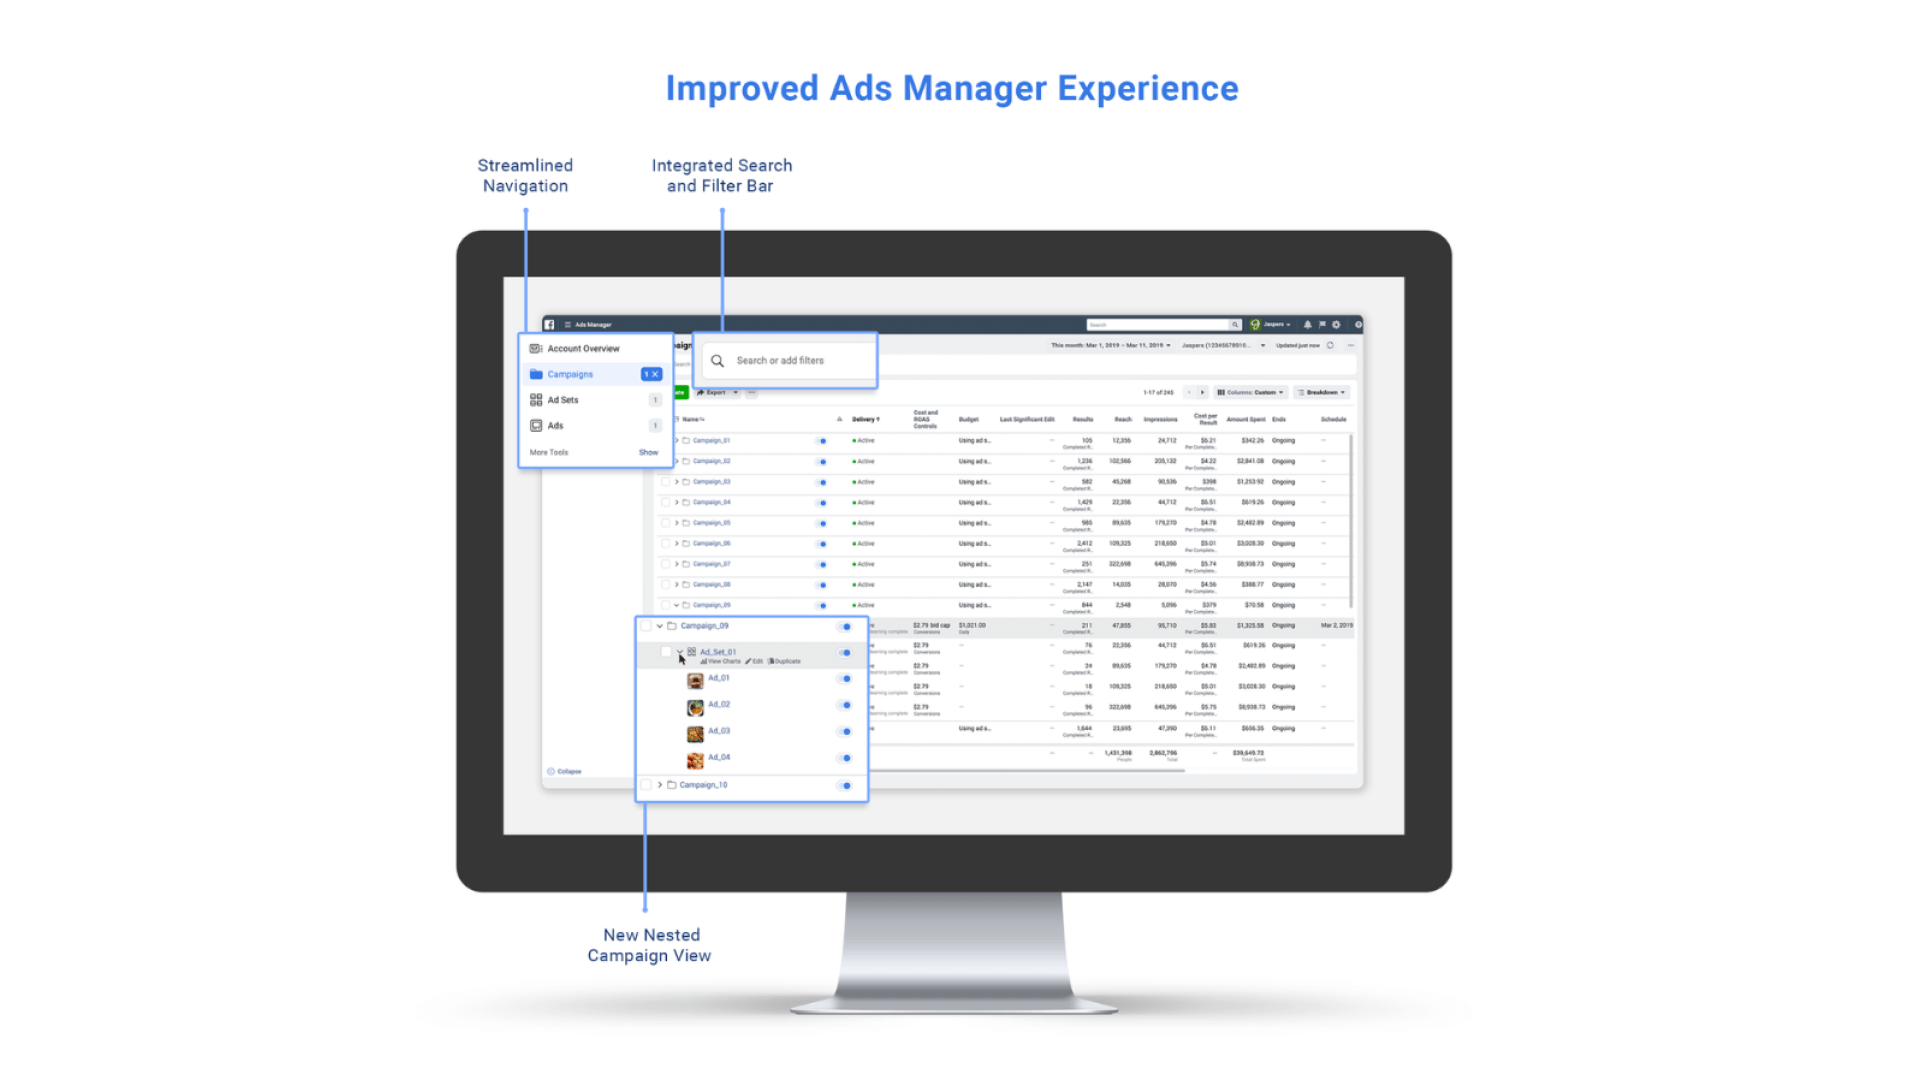 Facebook's updated Ads Manager UI is easier to navigate, but more work still needed, say advertisers